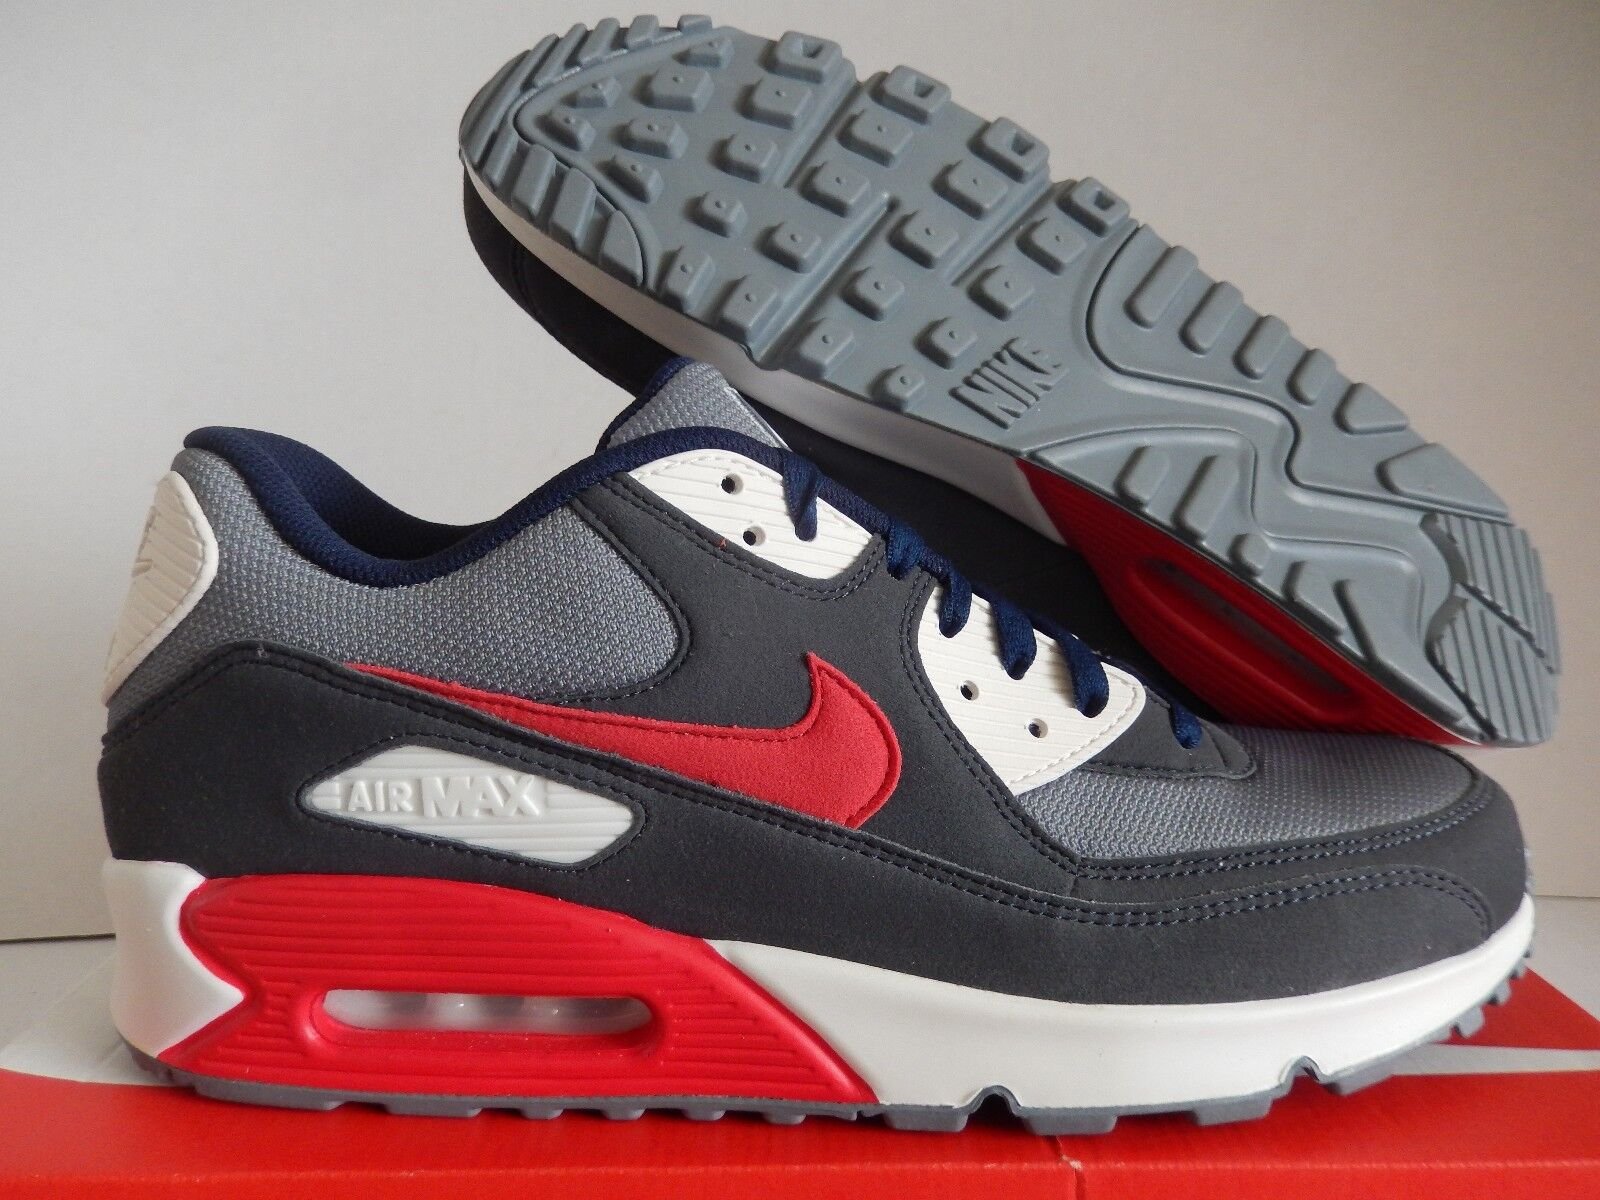 NIKE AIR MAX 90 ID DARK SZ gris -blanc -NAVY Bleu-RED SZ DARK 12